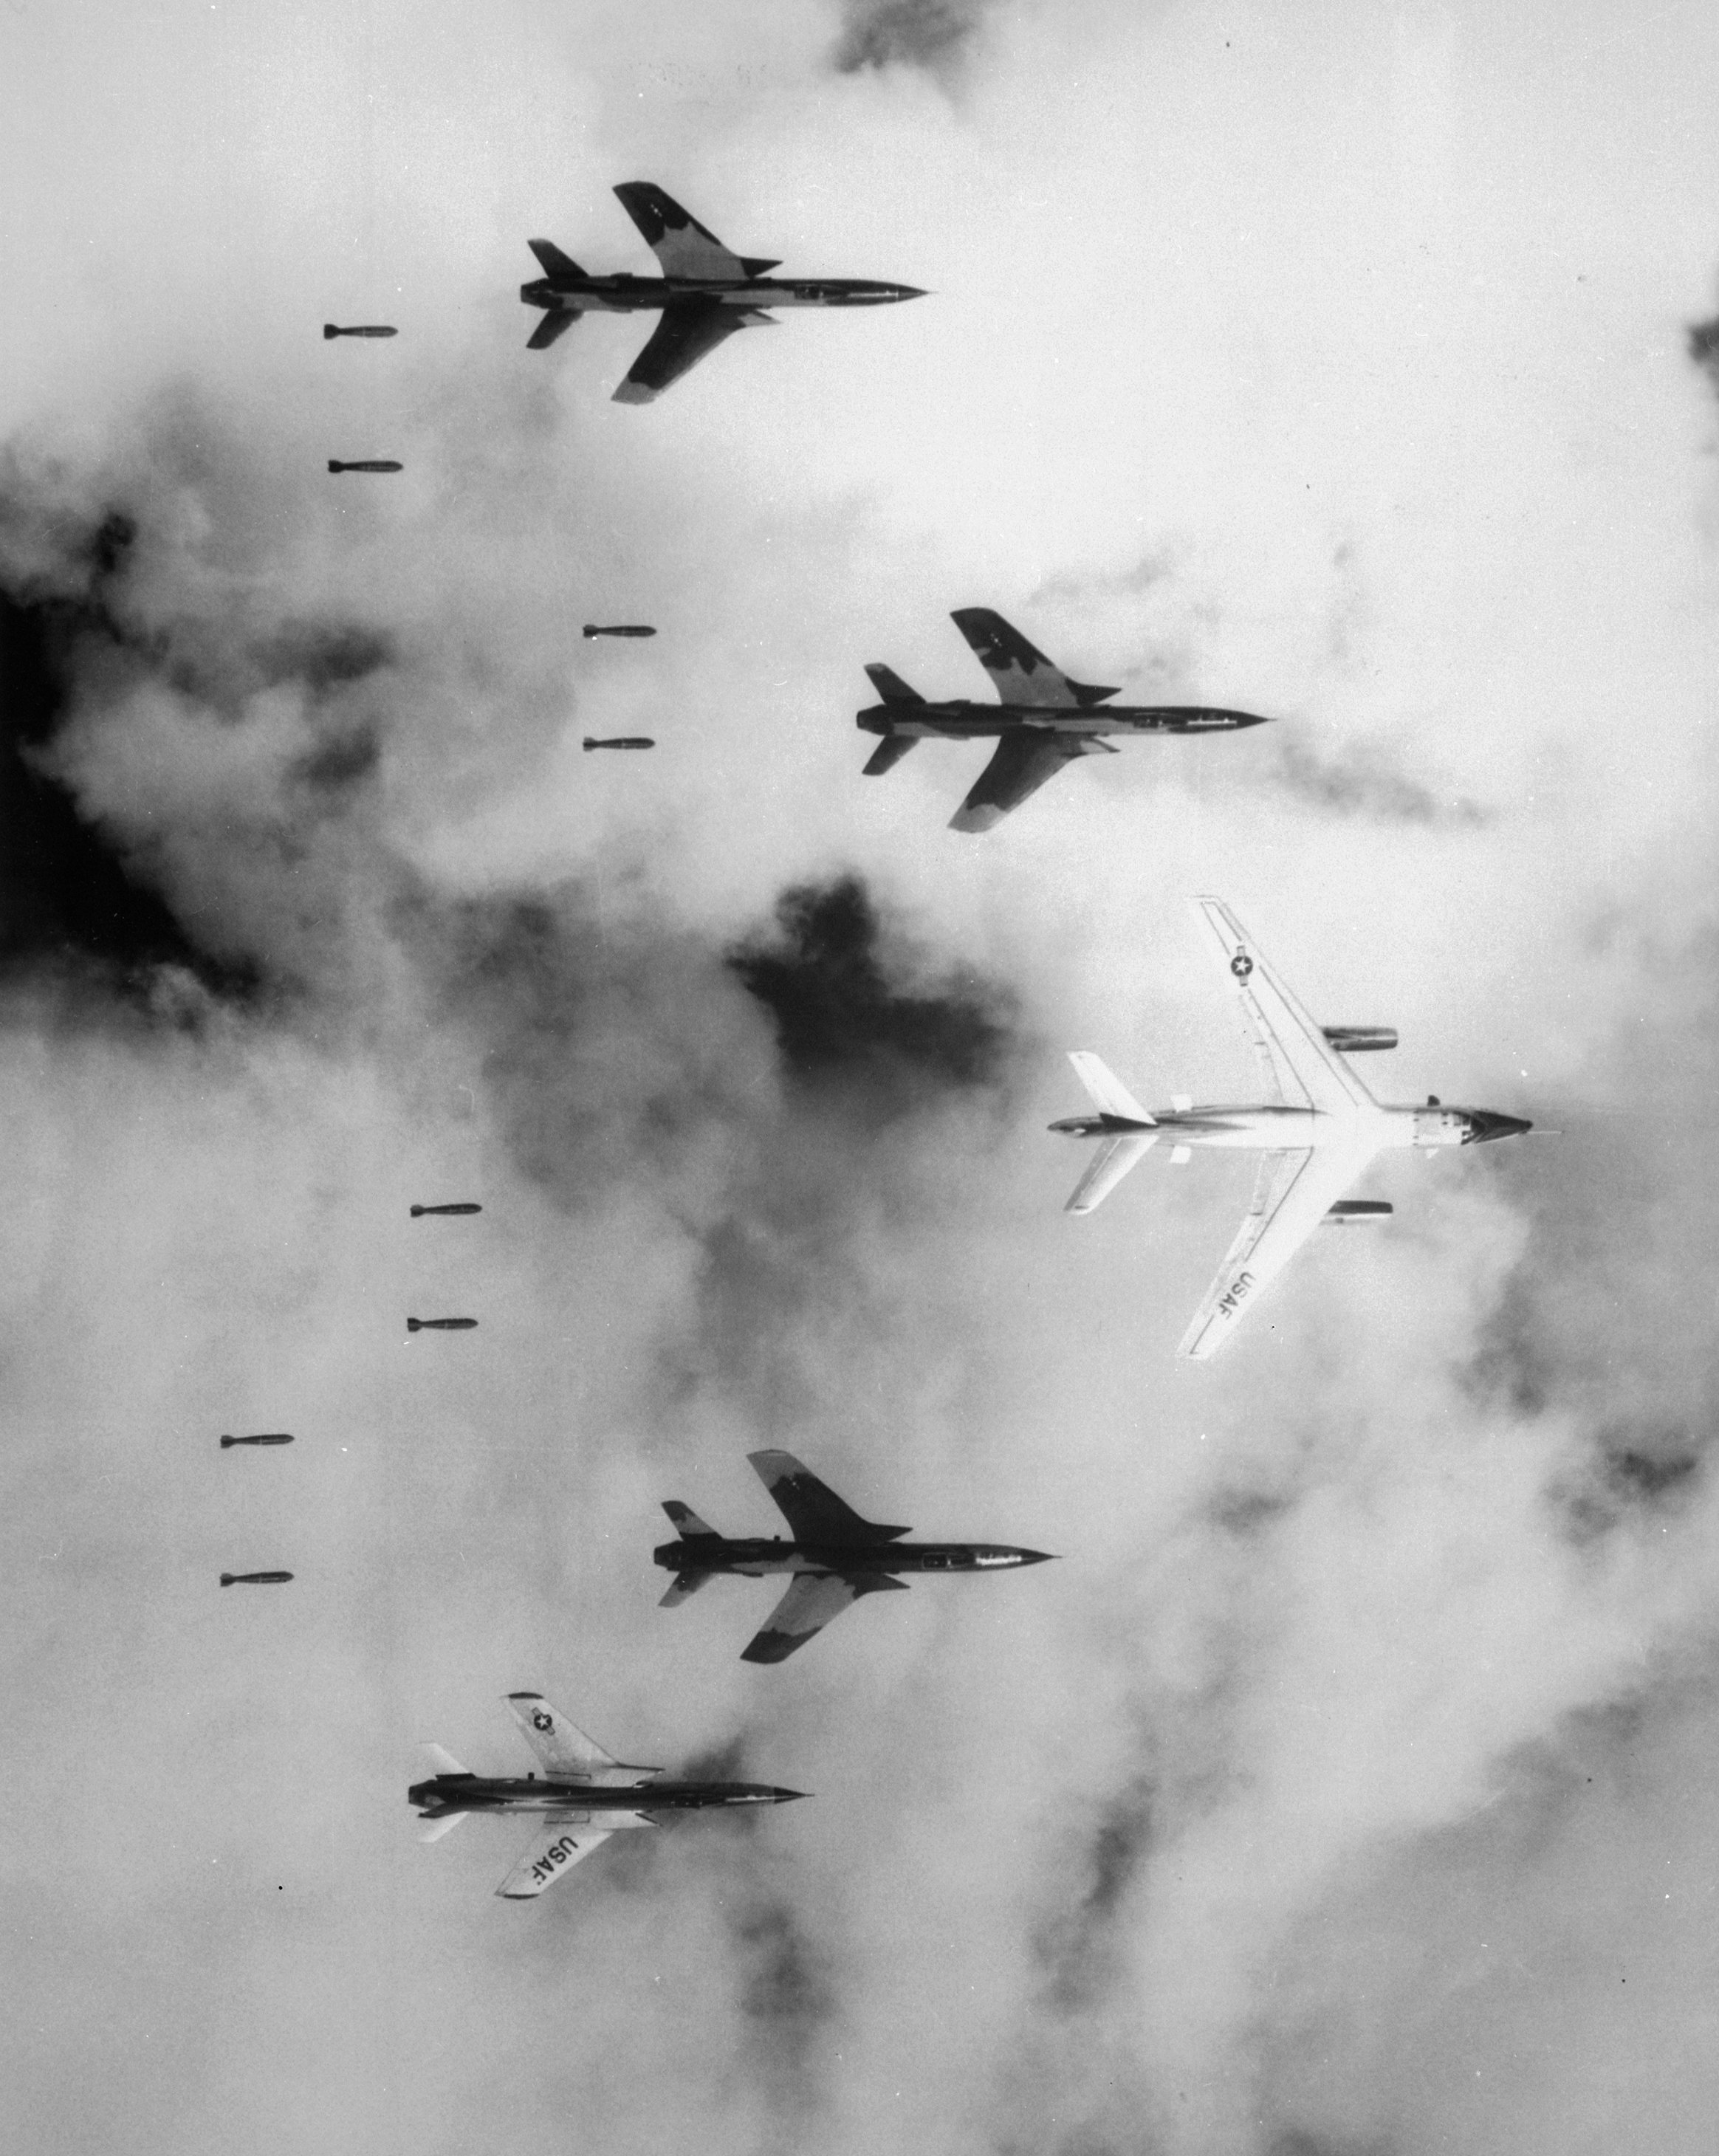 http://upload.wikimedia.org/wikipedia/commons/3/3c/Bombing_in_Vietnam.jpg